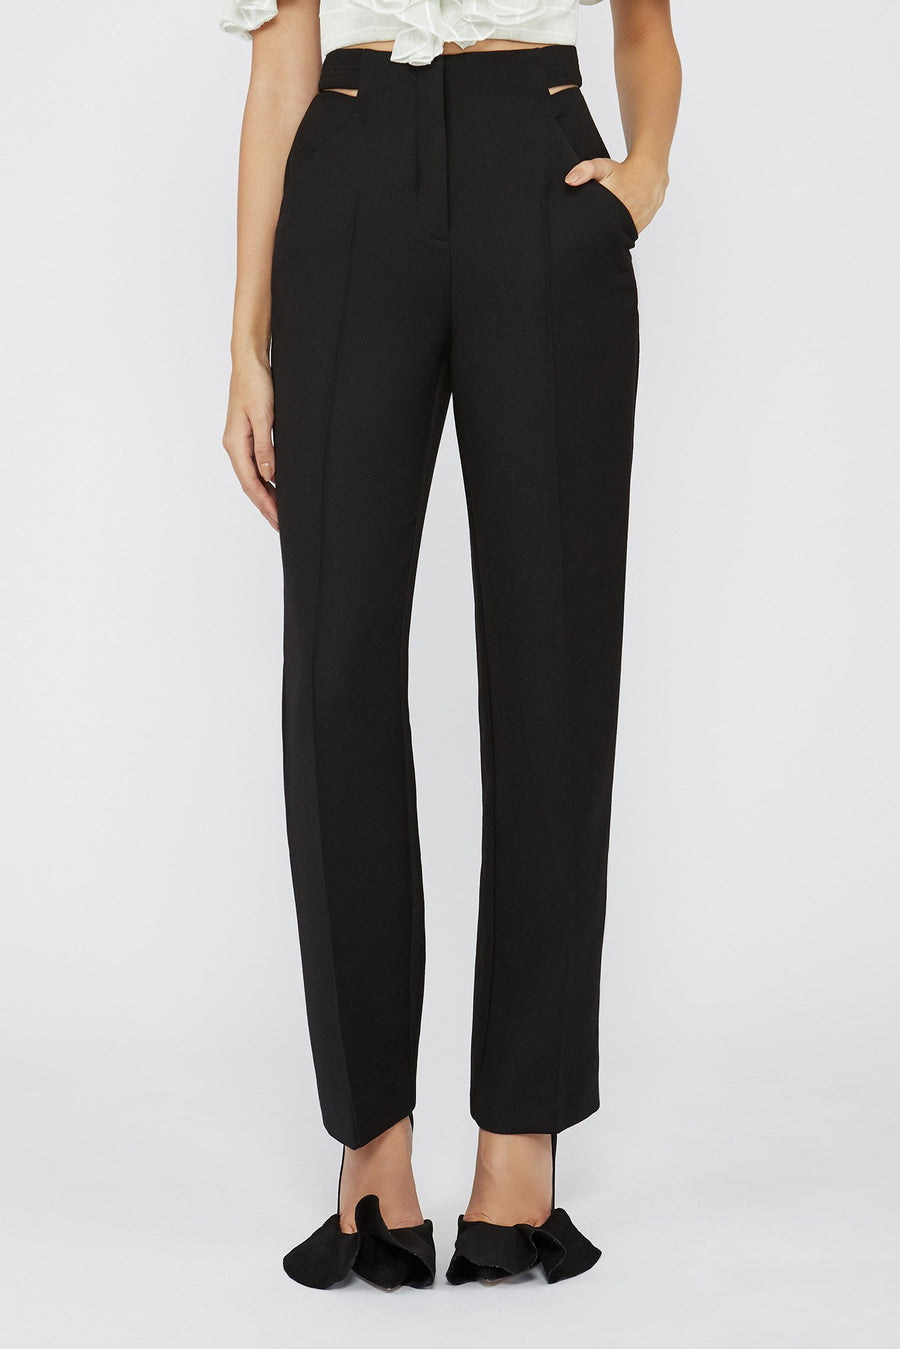 Acler Winton Pants